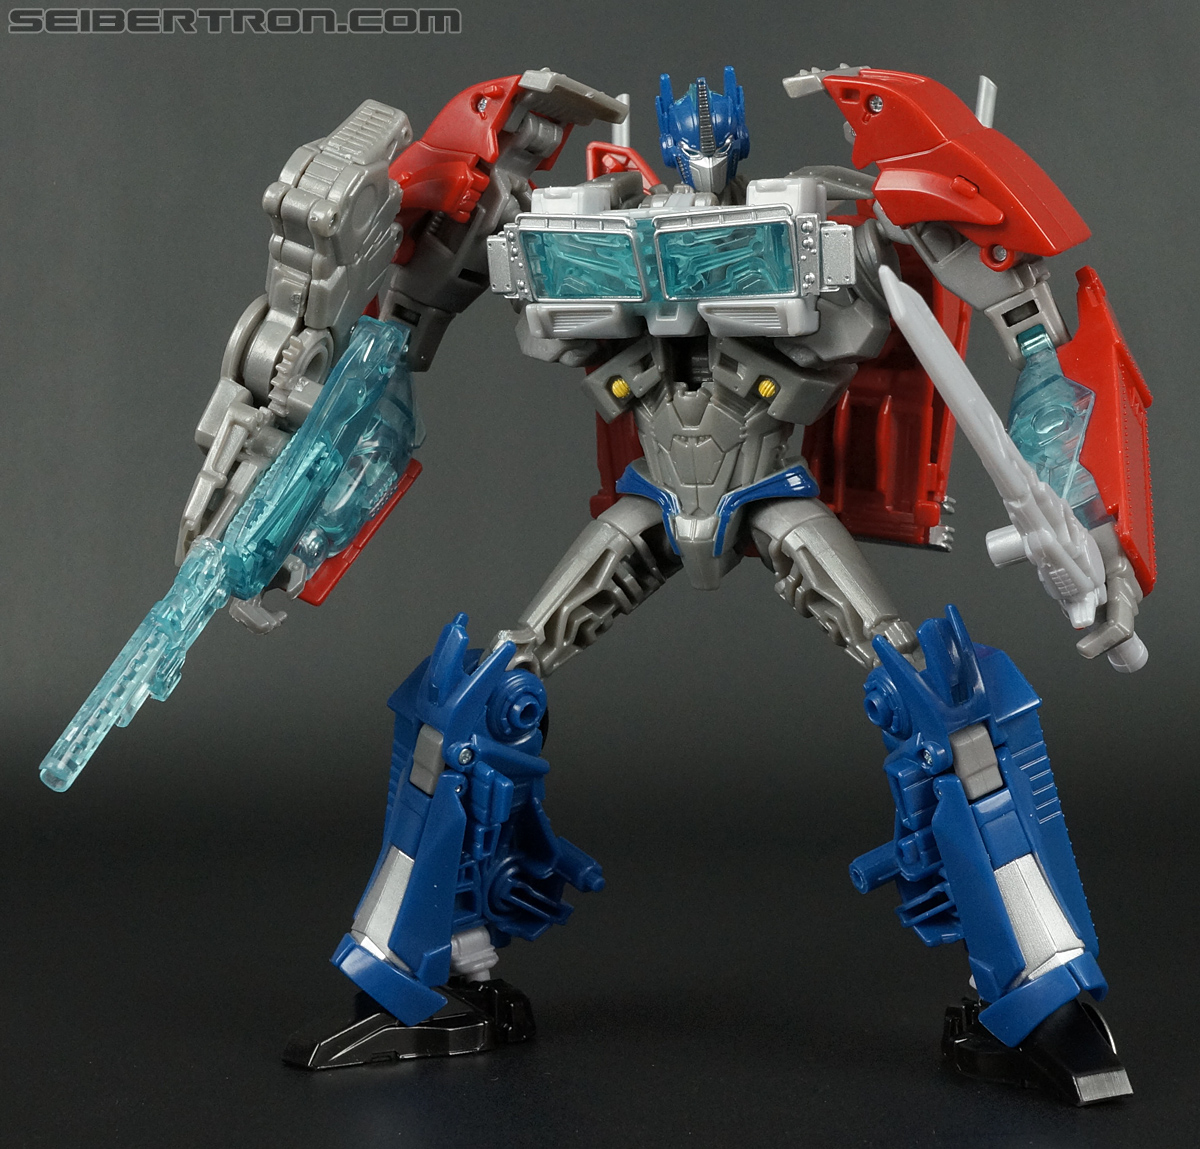 Transformers Prime: Robots In Disguise Optimus Prime (Image #174 of 176)